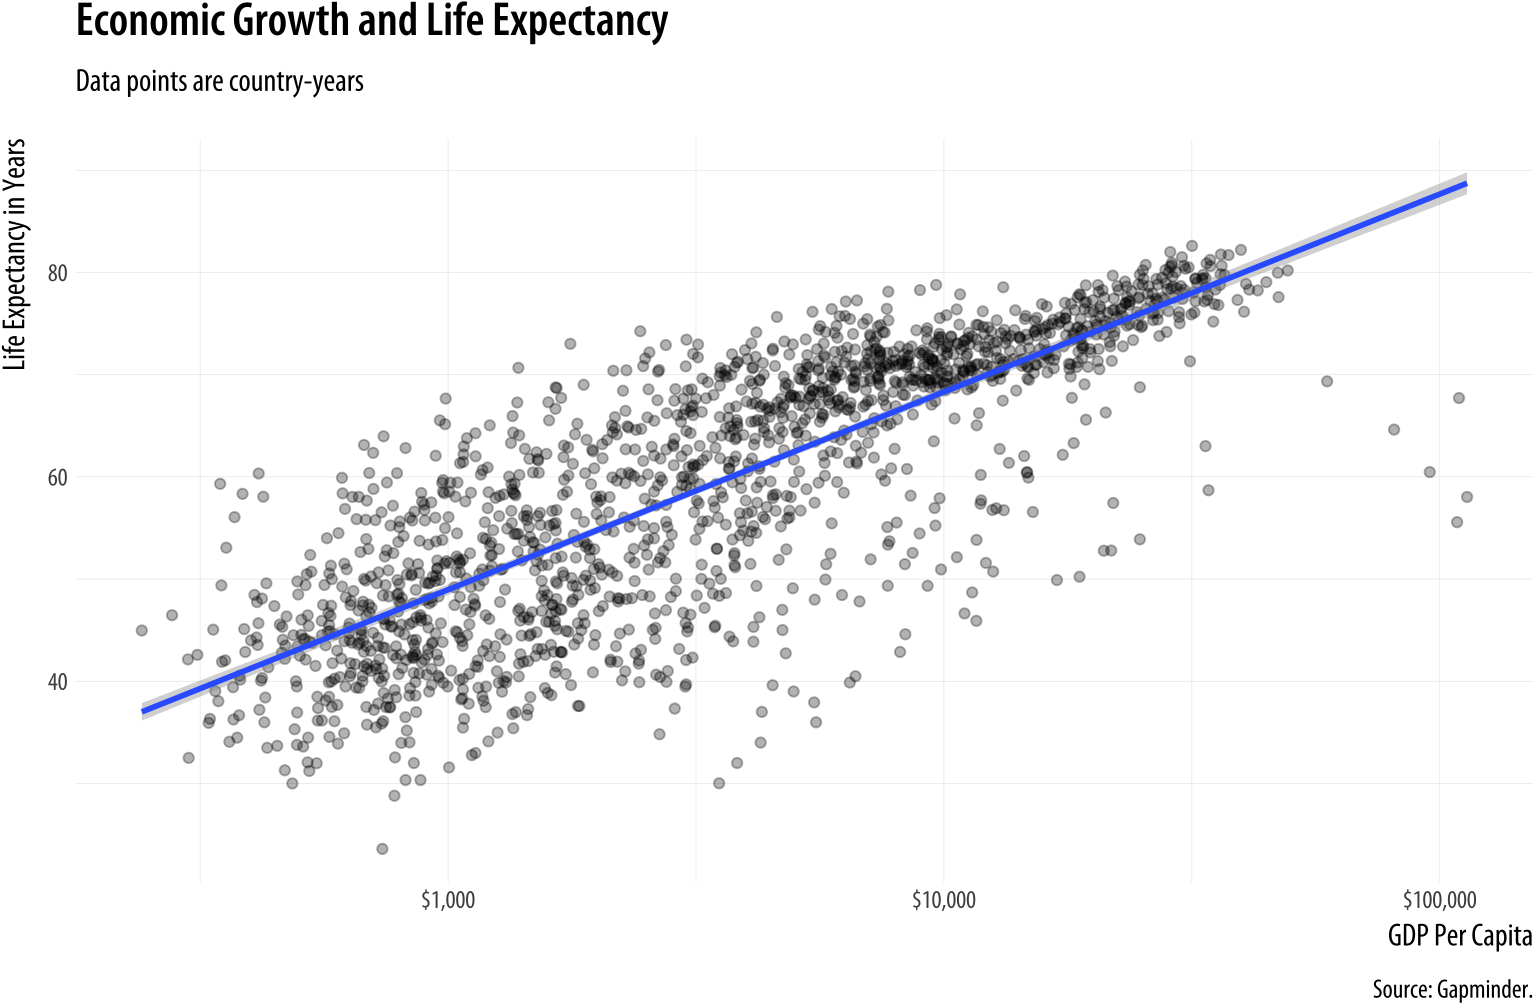 A more polished plot of Life Expectancy vs GDP.